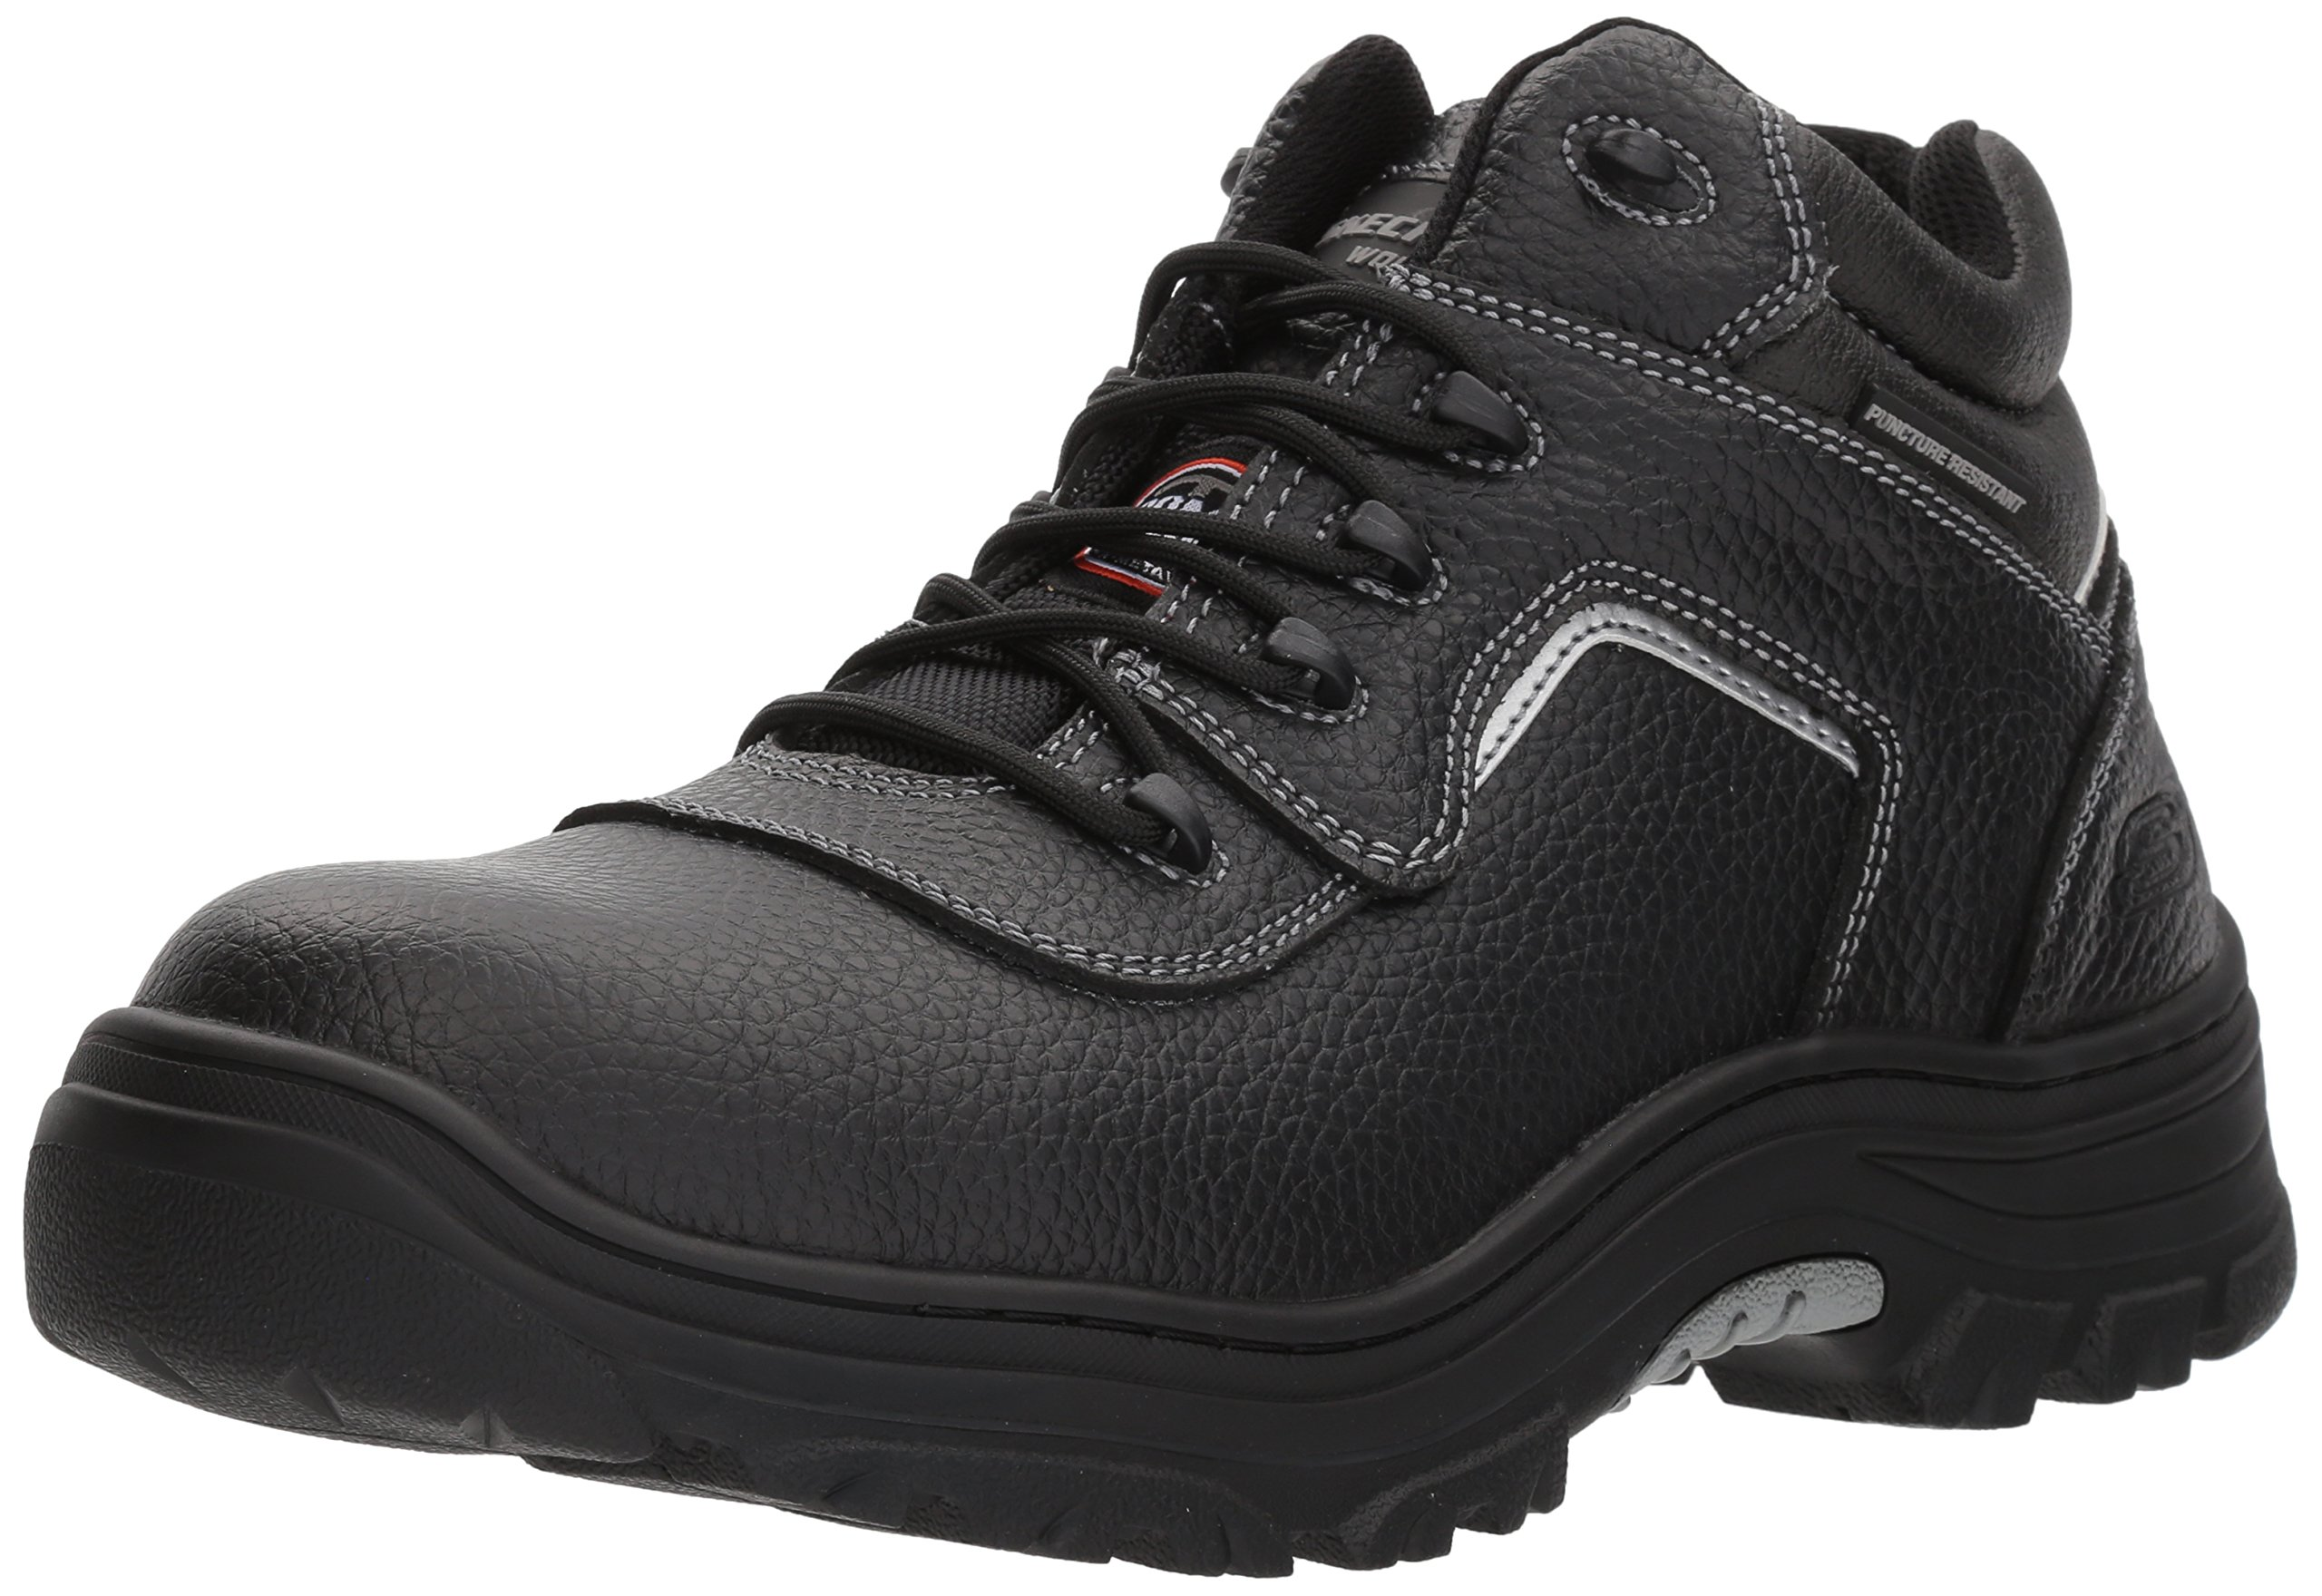 Skechers for Work Men's Burgin-Sosder Industrial Boot,Black Embossed Leather,9 W US